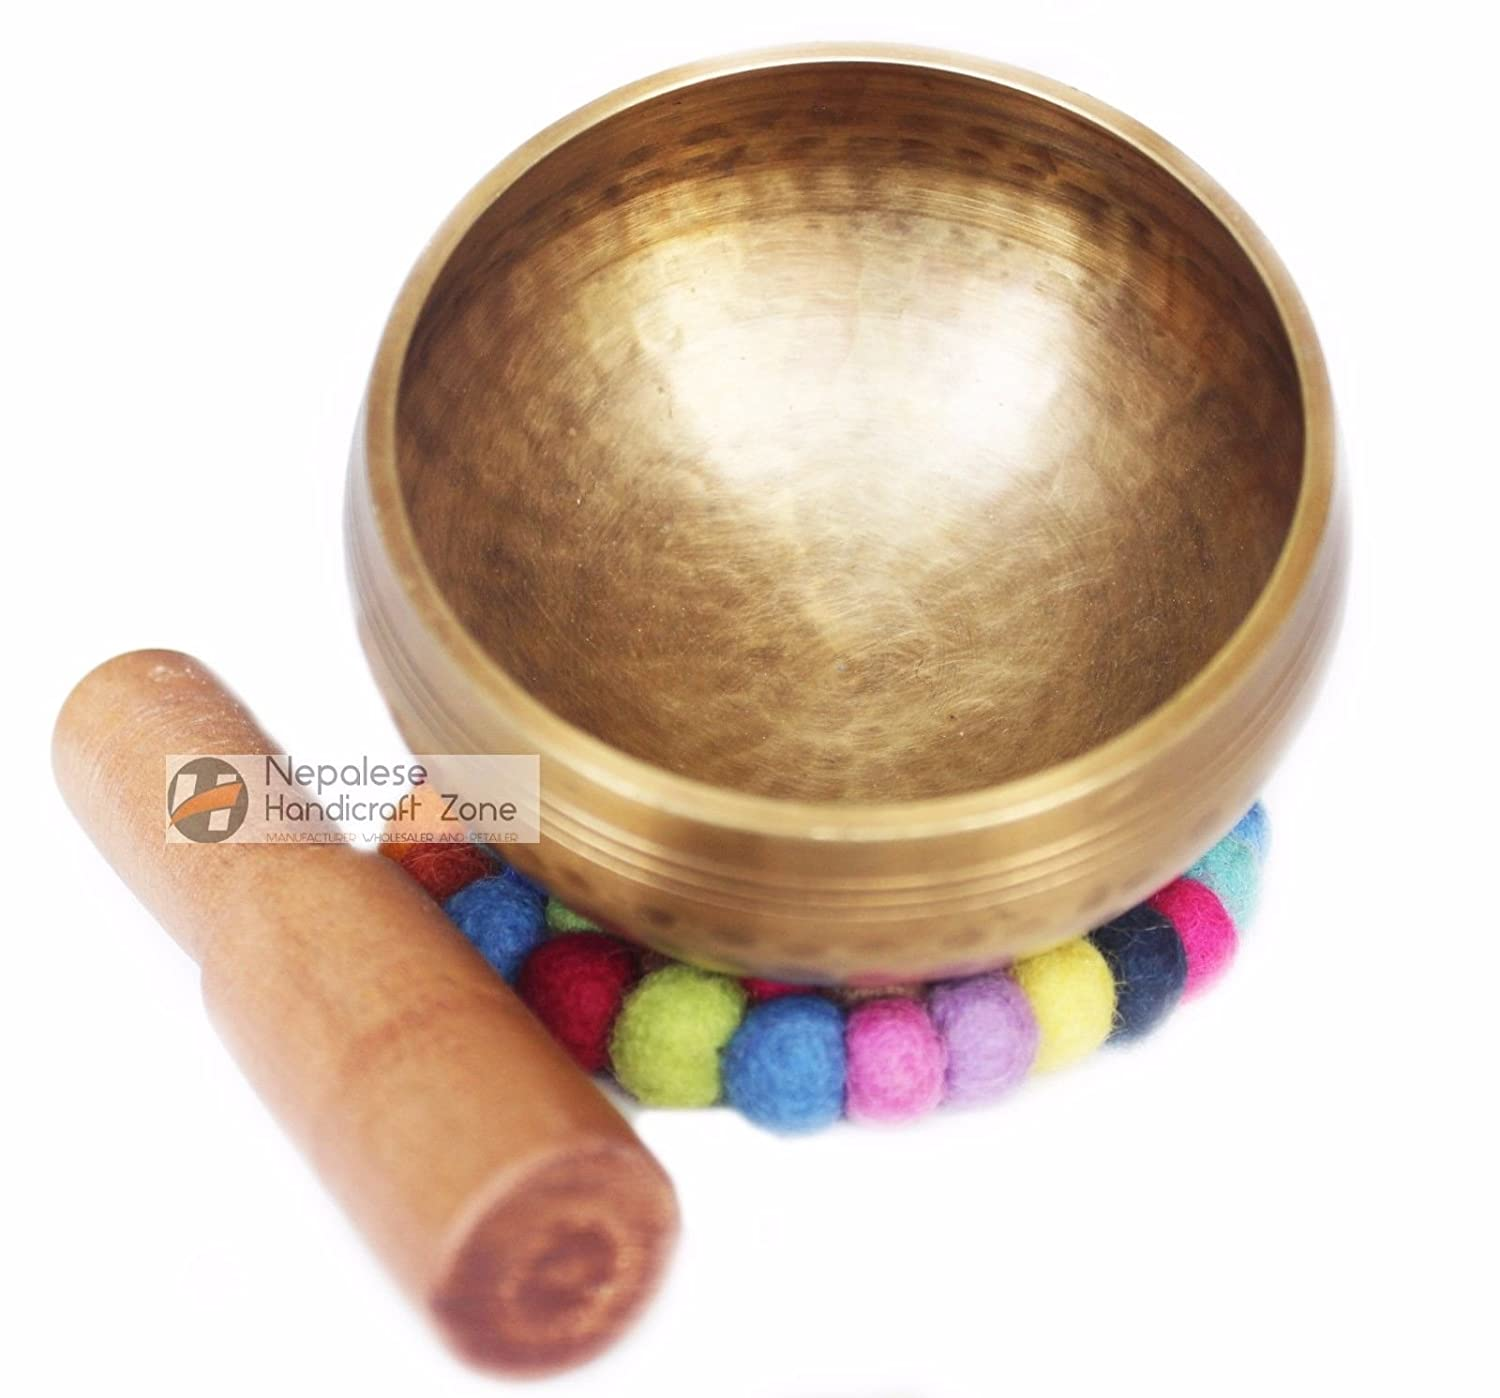 Singing Bowl Tibetan Meditation and Mallet Yoga Healing Buddhist Brass 4 Set by Nepalese Handicraft Zone 1